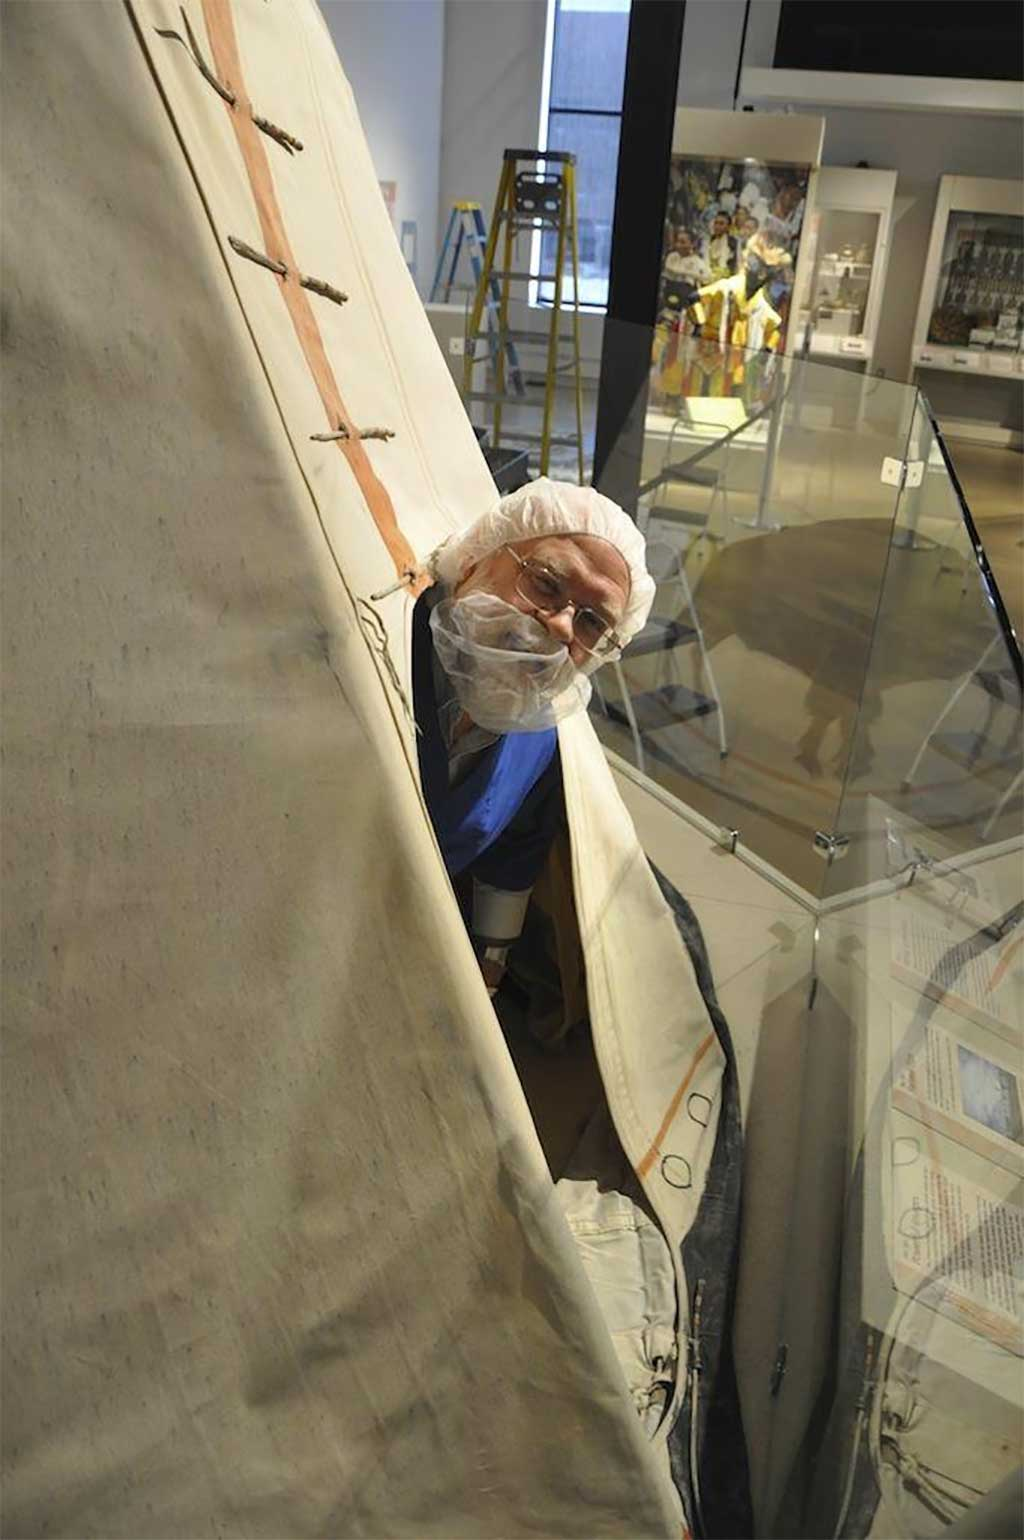 Wayne pops his head out of the tipi in the exhibit gallery